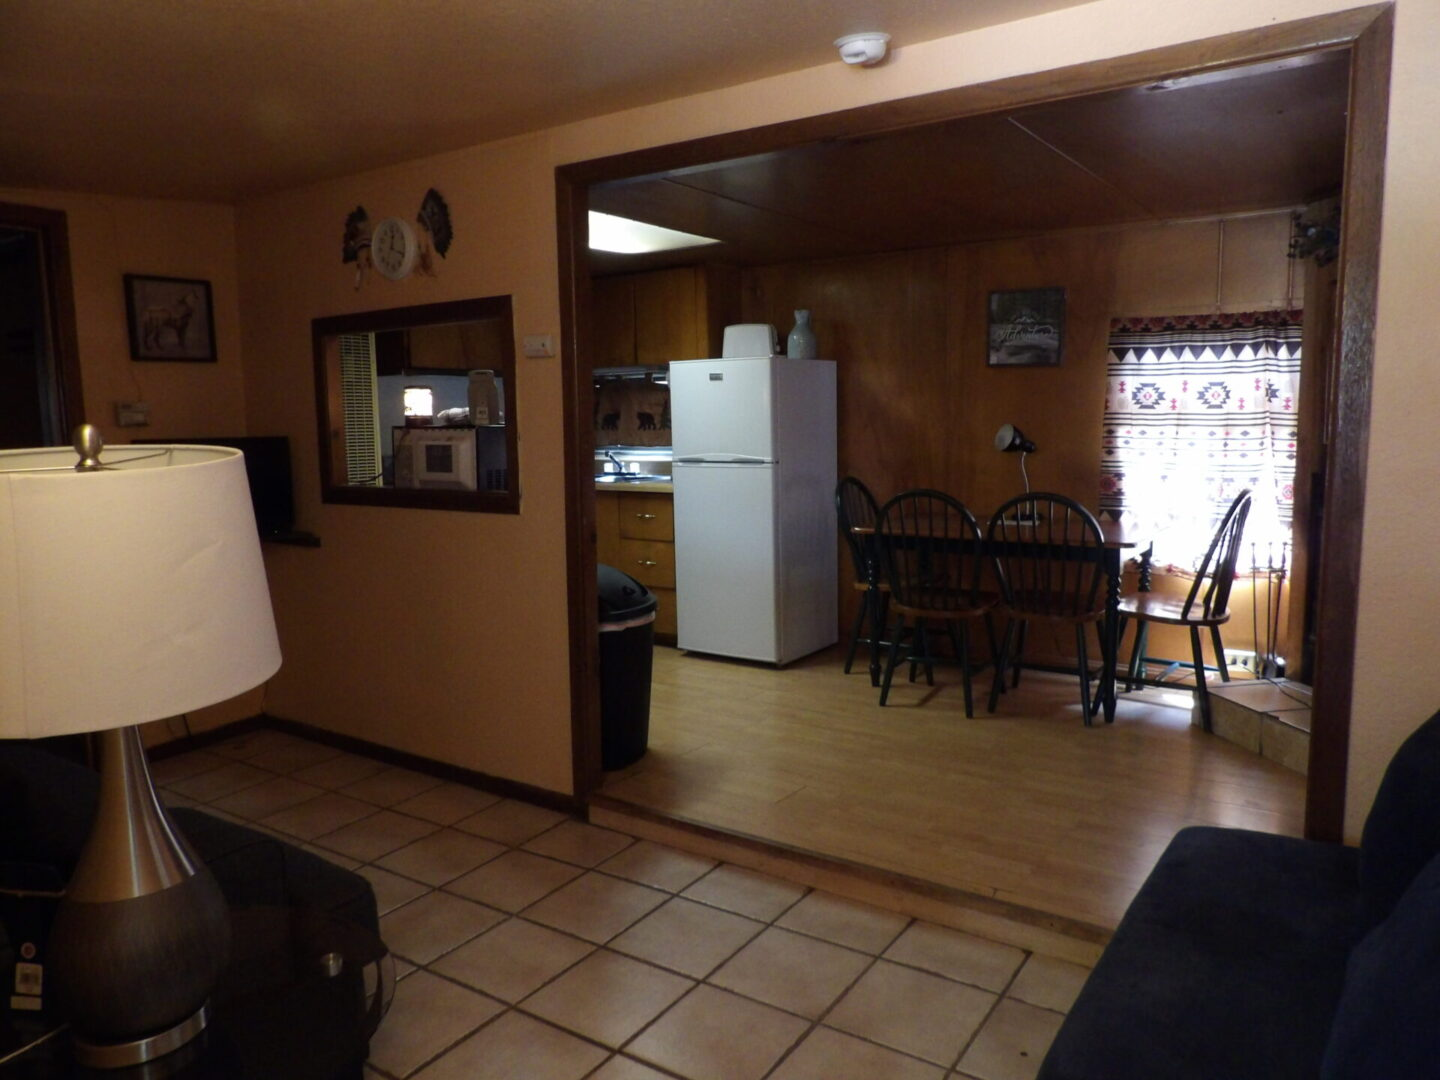 living room overlooking the kitchen and dining